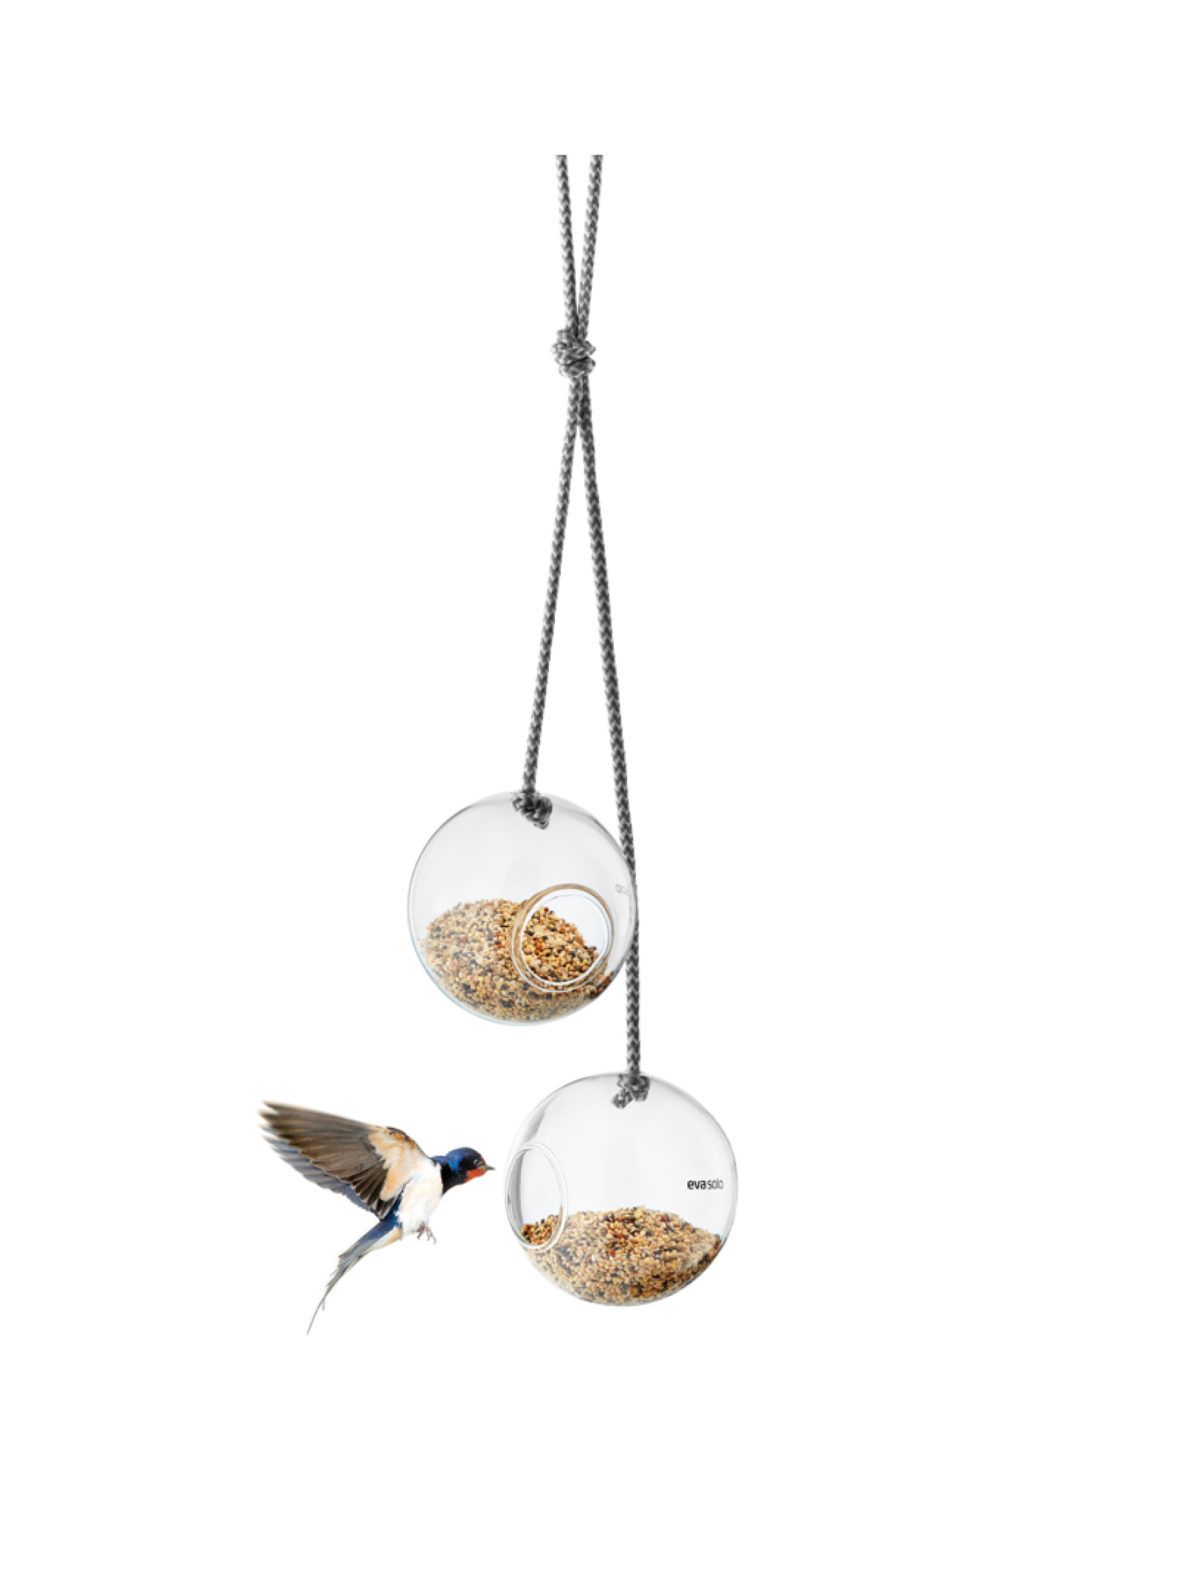 Eva Solo glass bird feeders 2